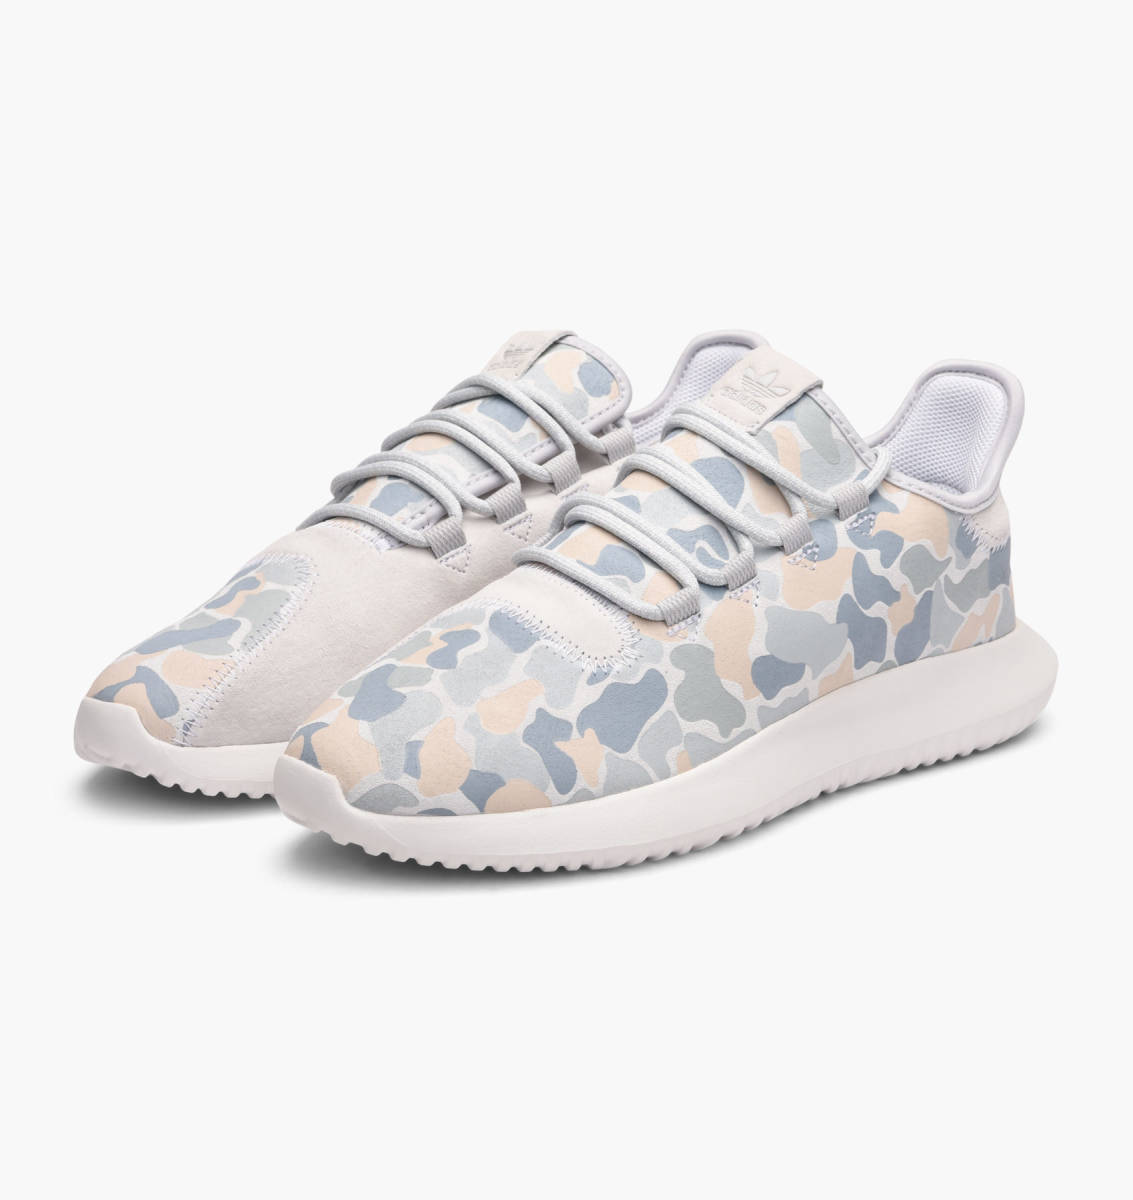 adidas Originals Tubular Shadow in bunt BB8817 | everysize